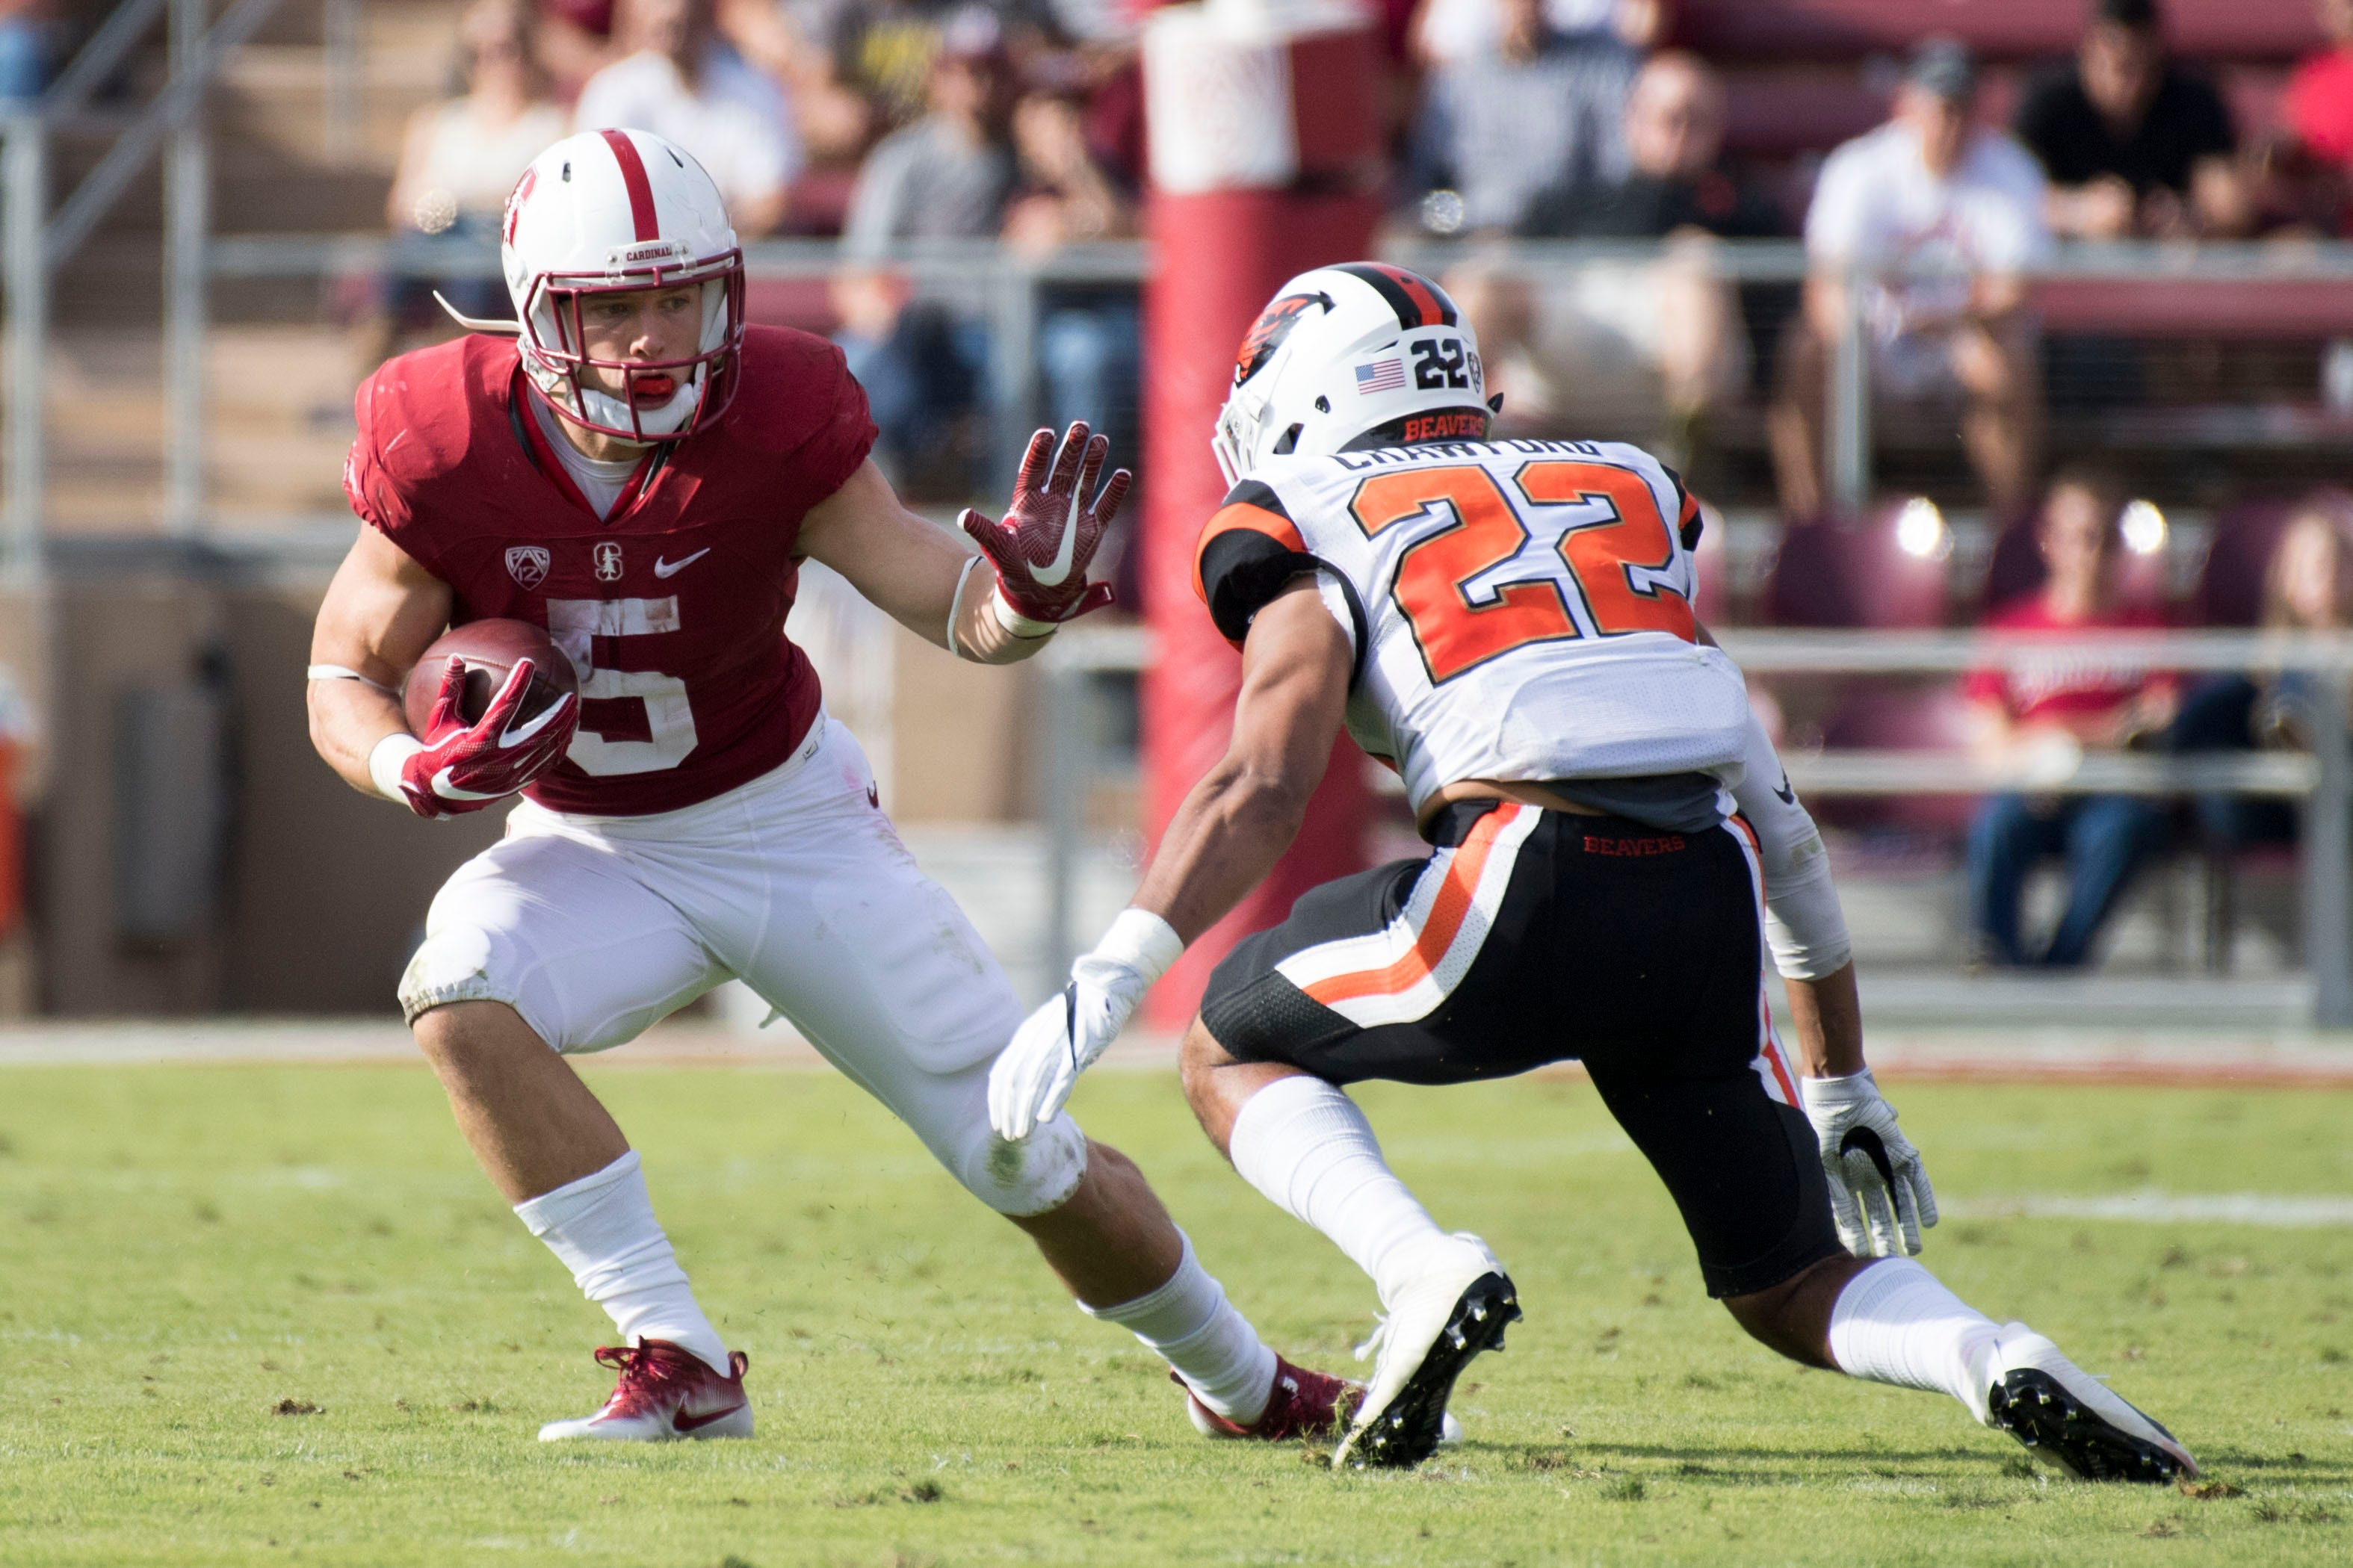 Draft preview: Which RB will the Colts take?